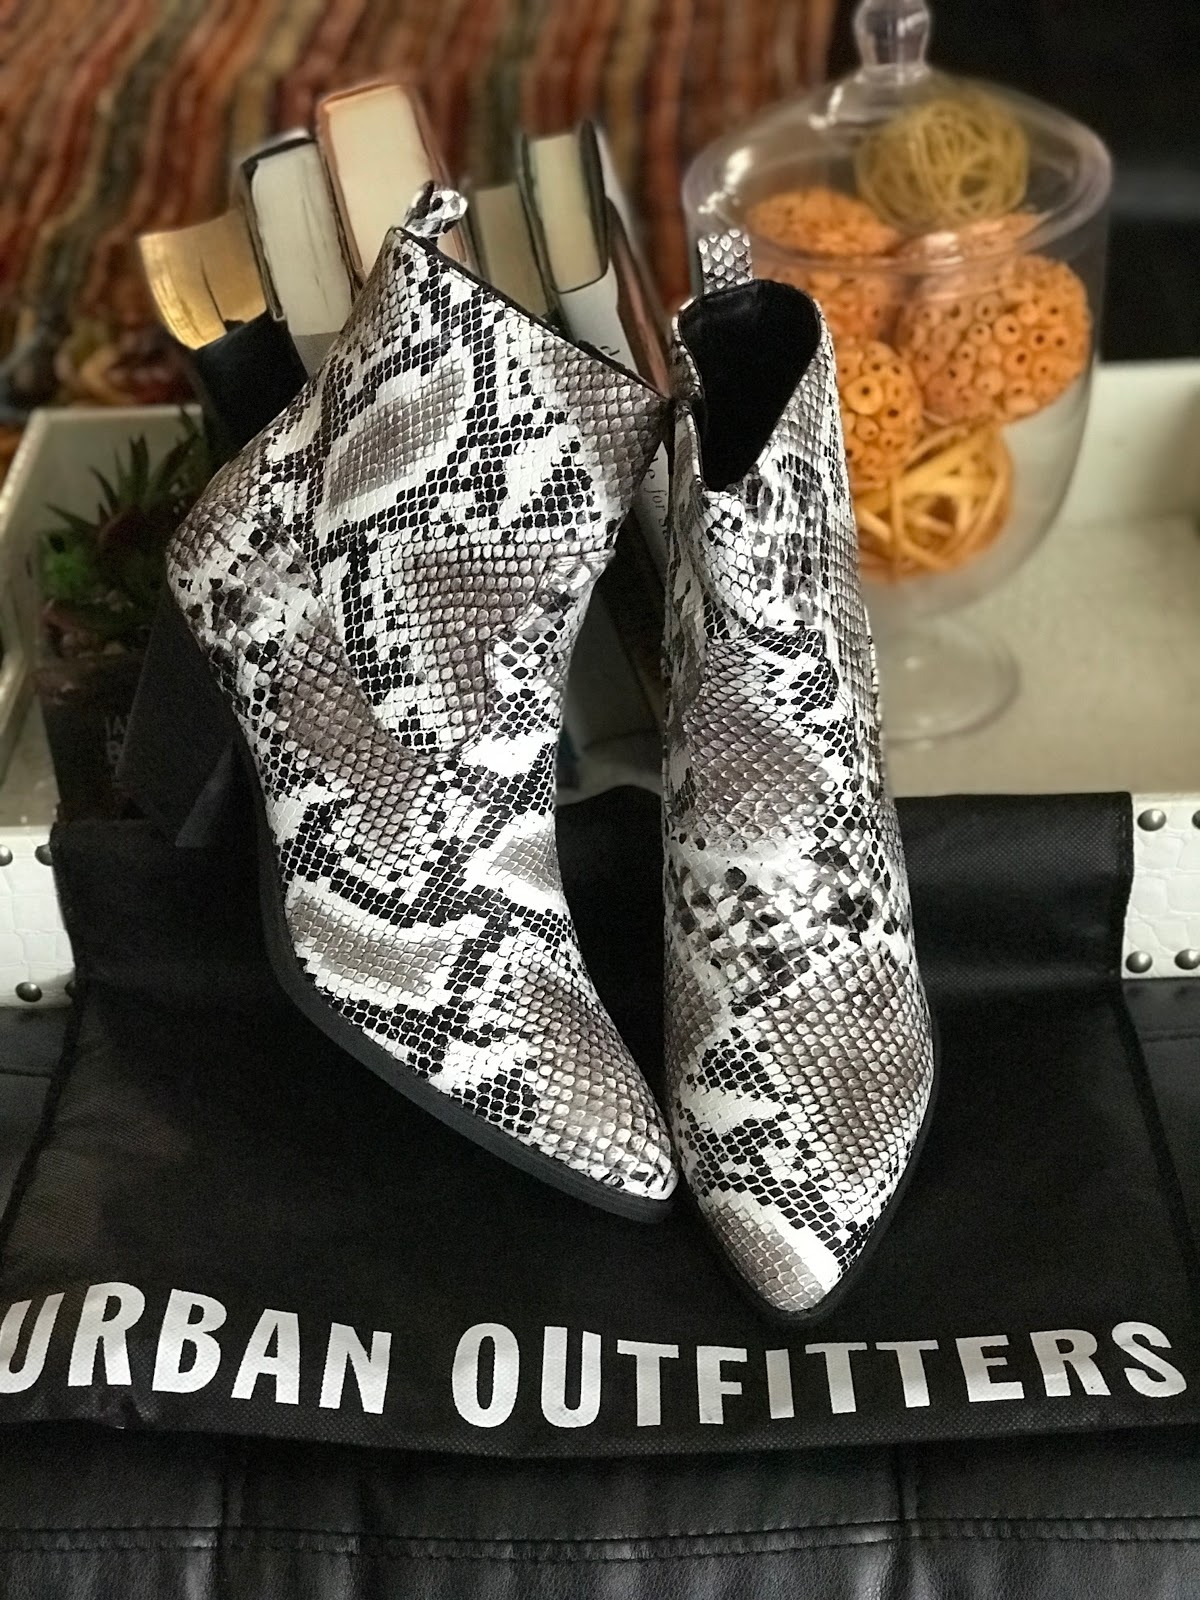 Image: Snakeskin boots Tangie Bell Bought from Catos Fashion to share on her blog Bits and Babbles: Sometimes I shop